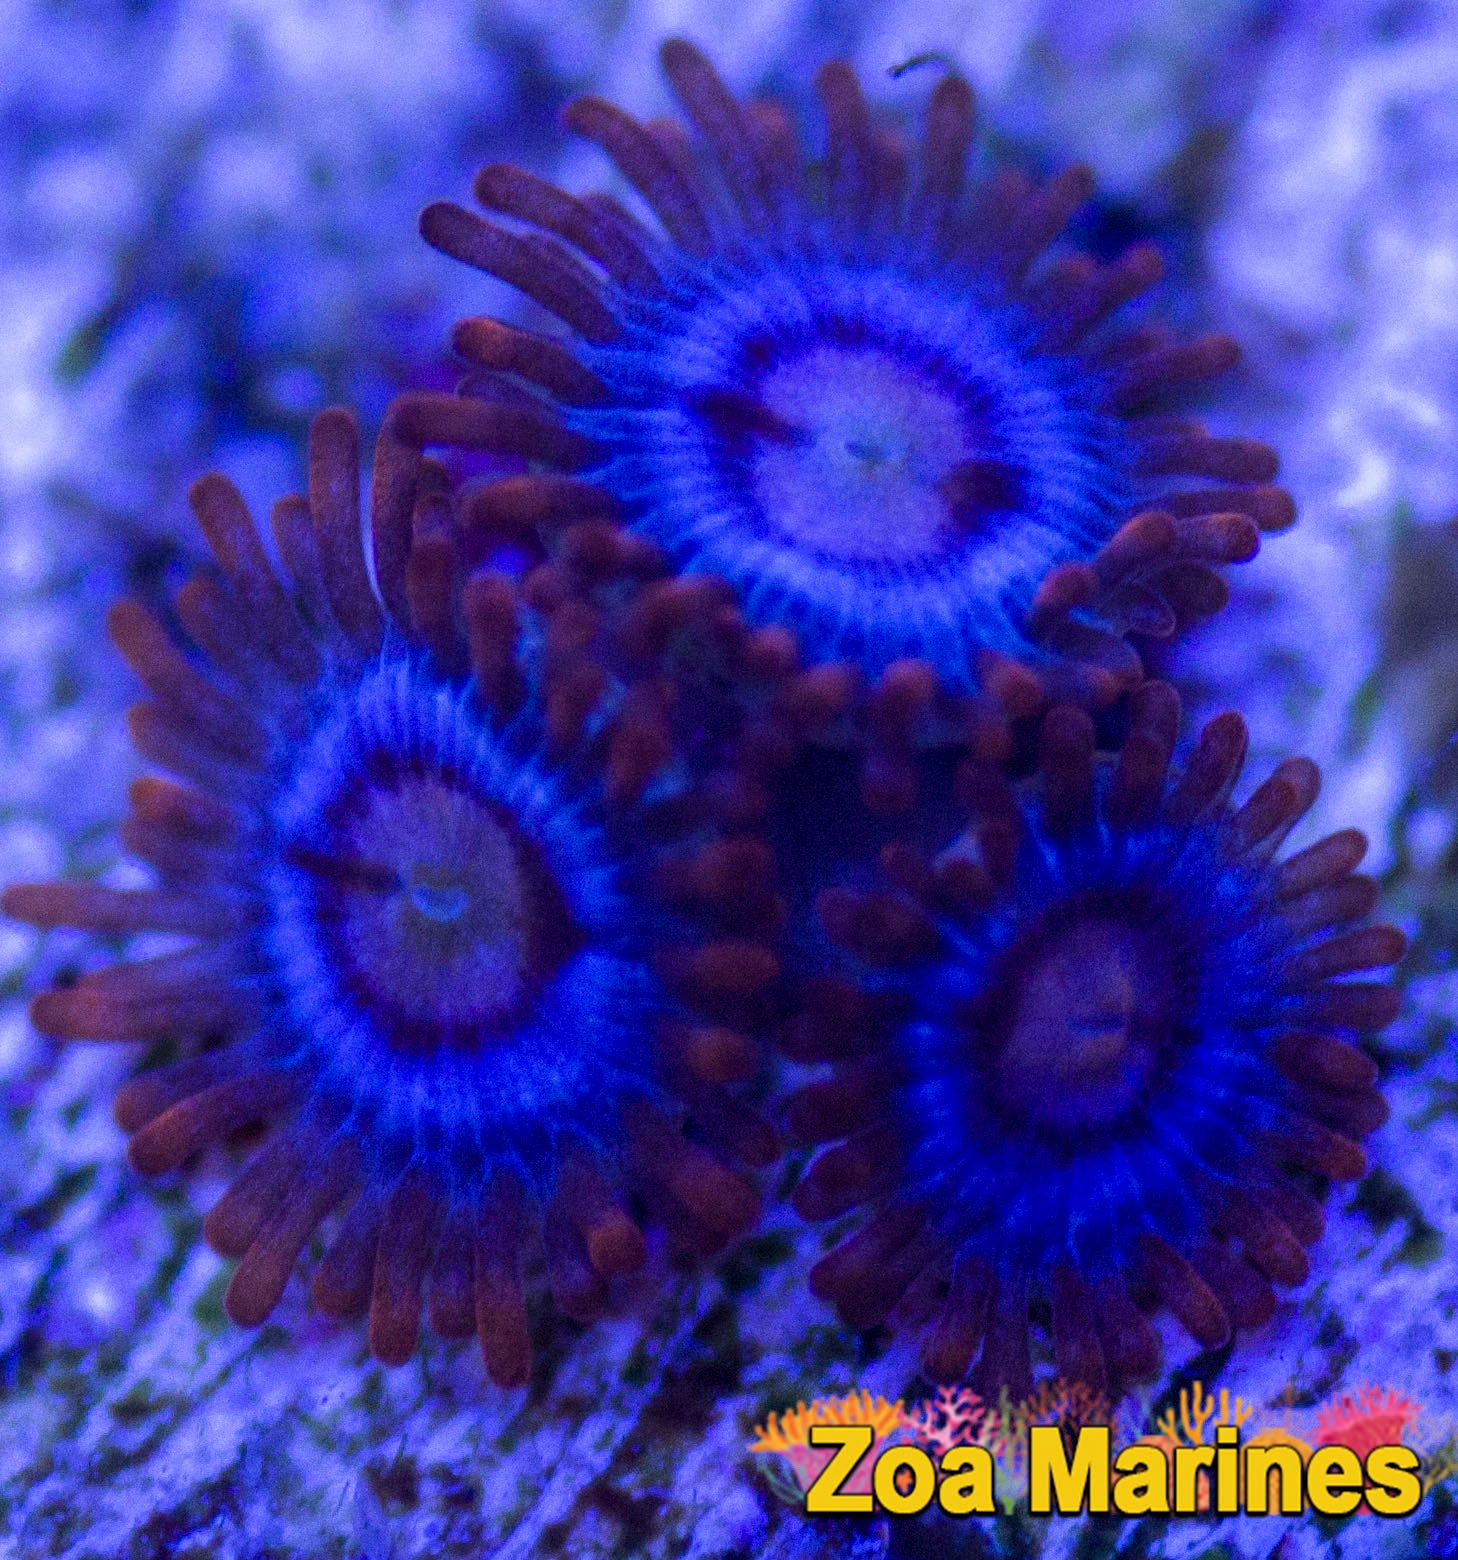 Zoa 'Snitches' Single OR Treble Heads on Plug